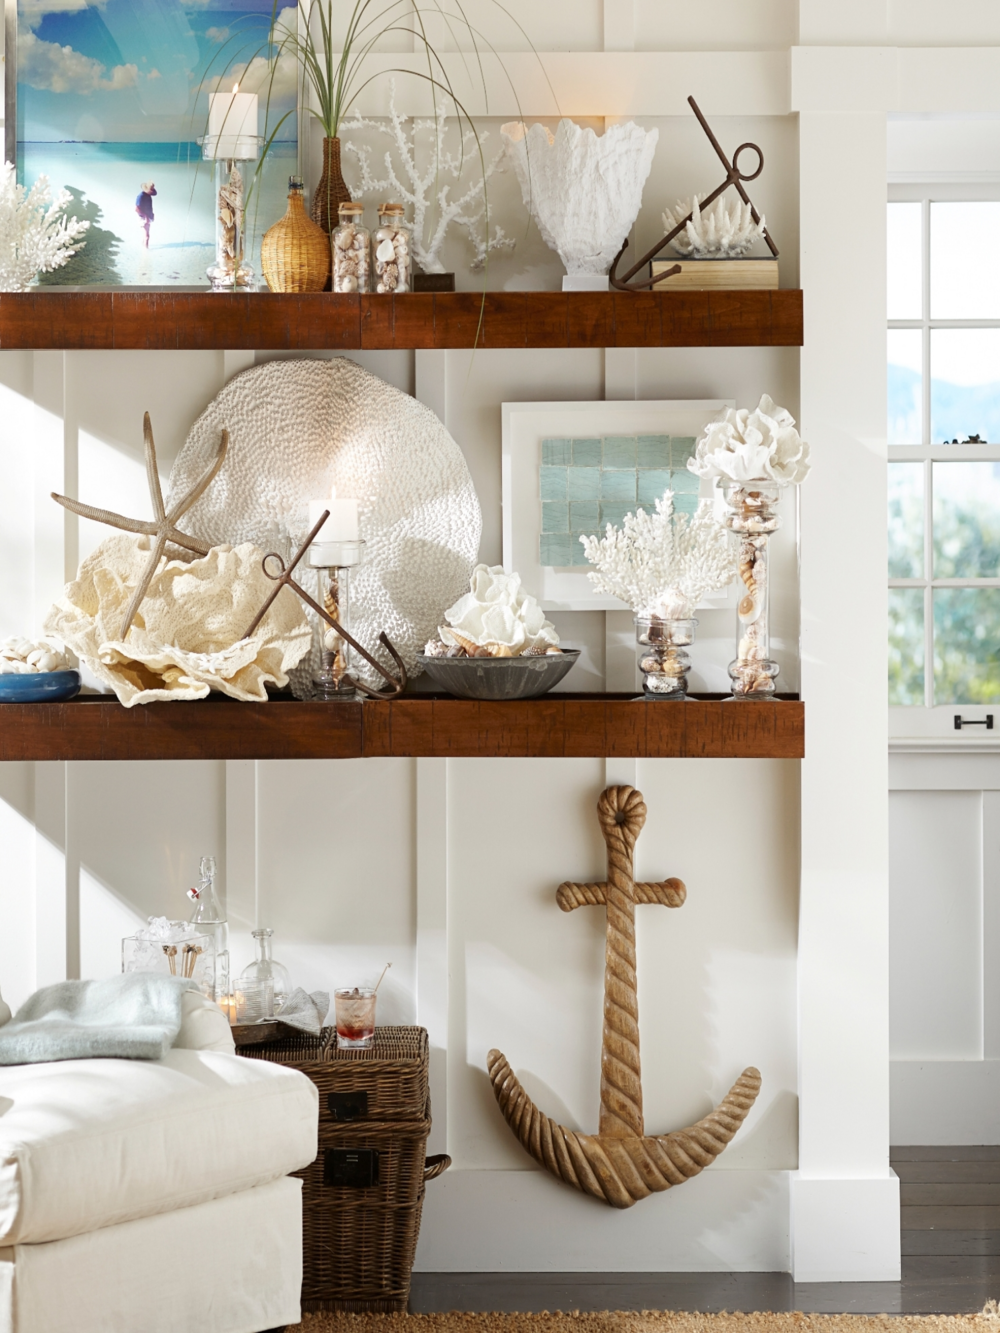 Style a bookcase or shelving with a tropical theme. Incorporate white furnishings, white walls and a jute rug. Photo: Pottery Barn.